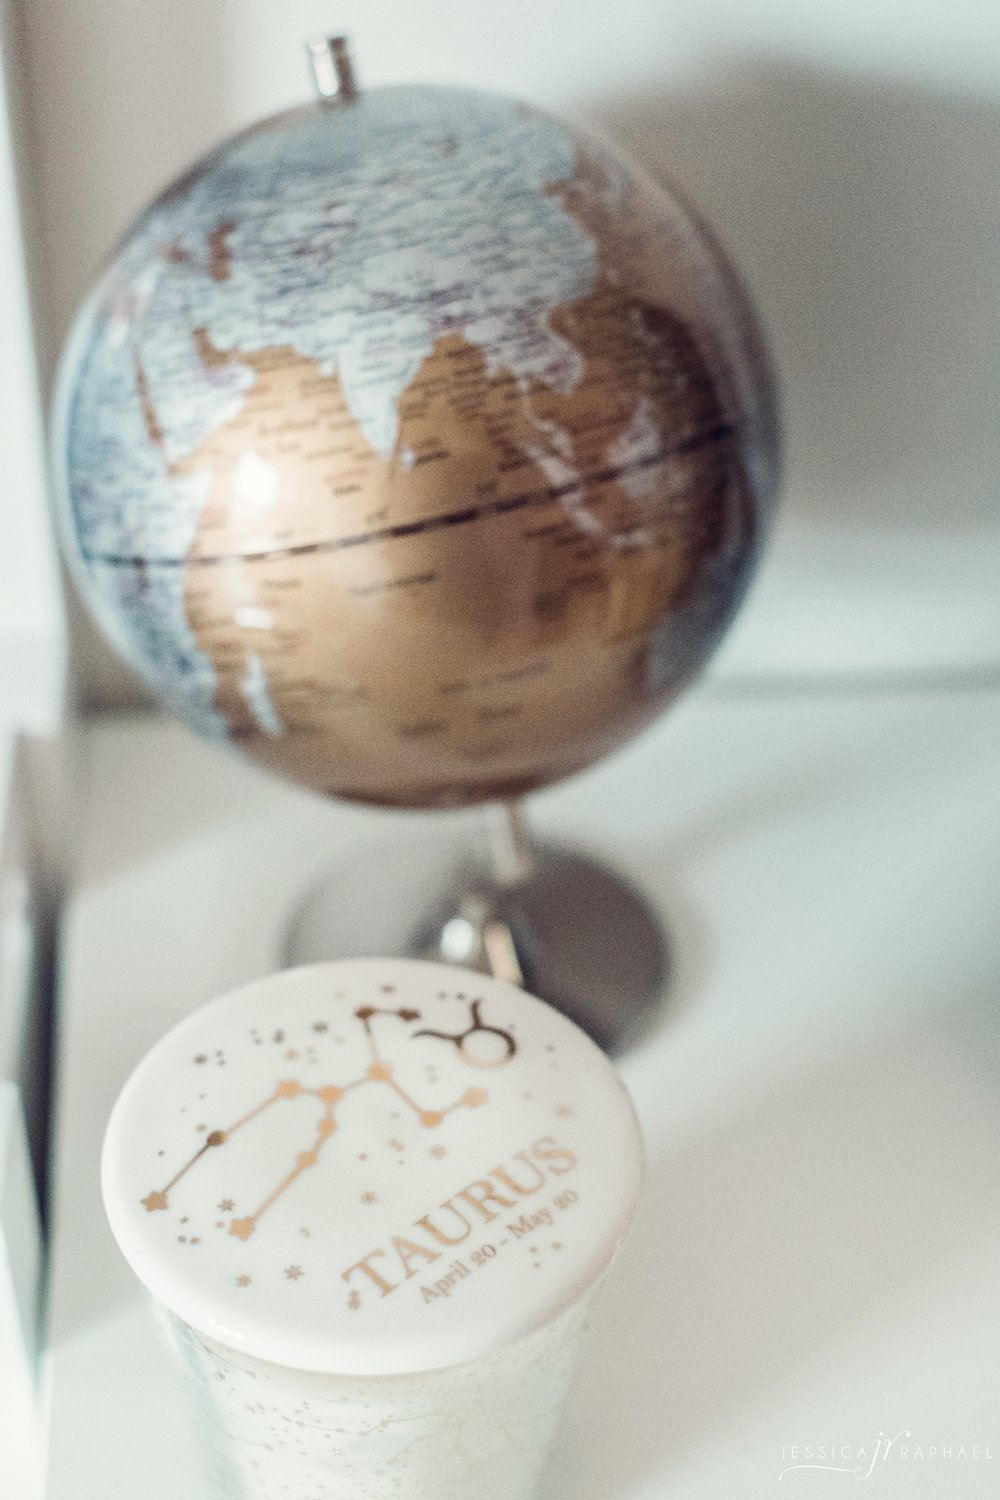 All entrepreneurs should have a globe on their desk. Seriously.